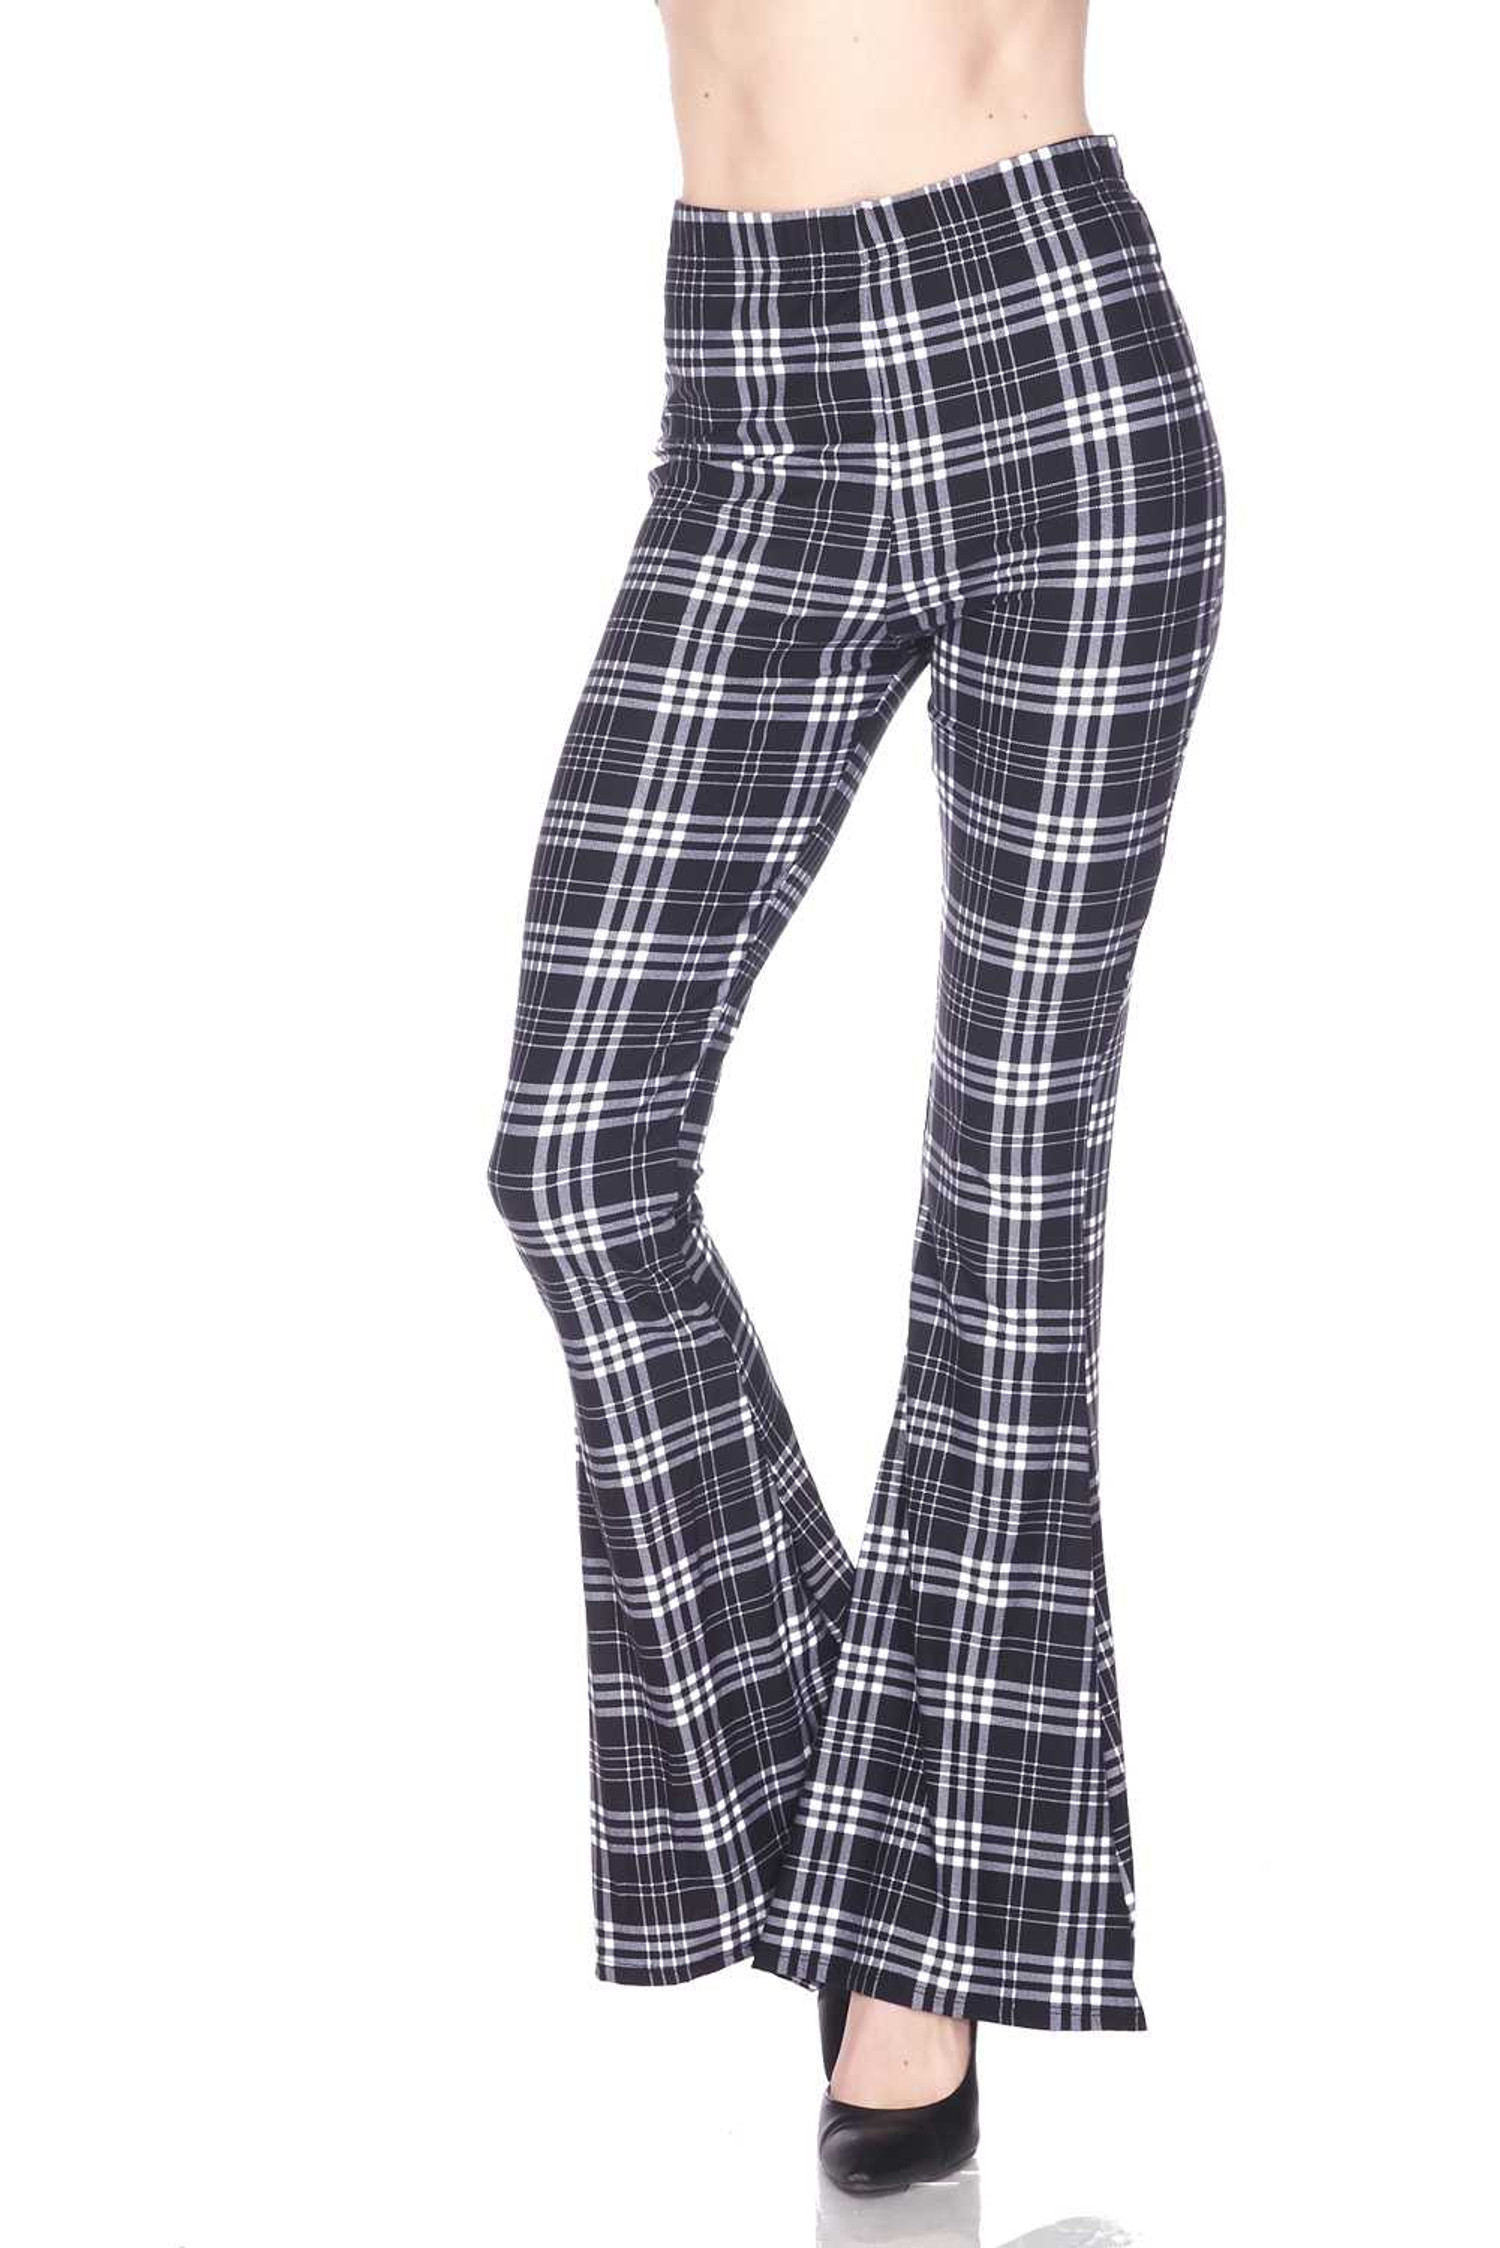 Buttery Soft Traditional Black and White Plaid Bell Bottom Leggings